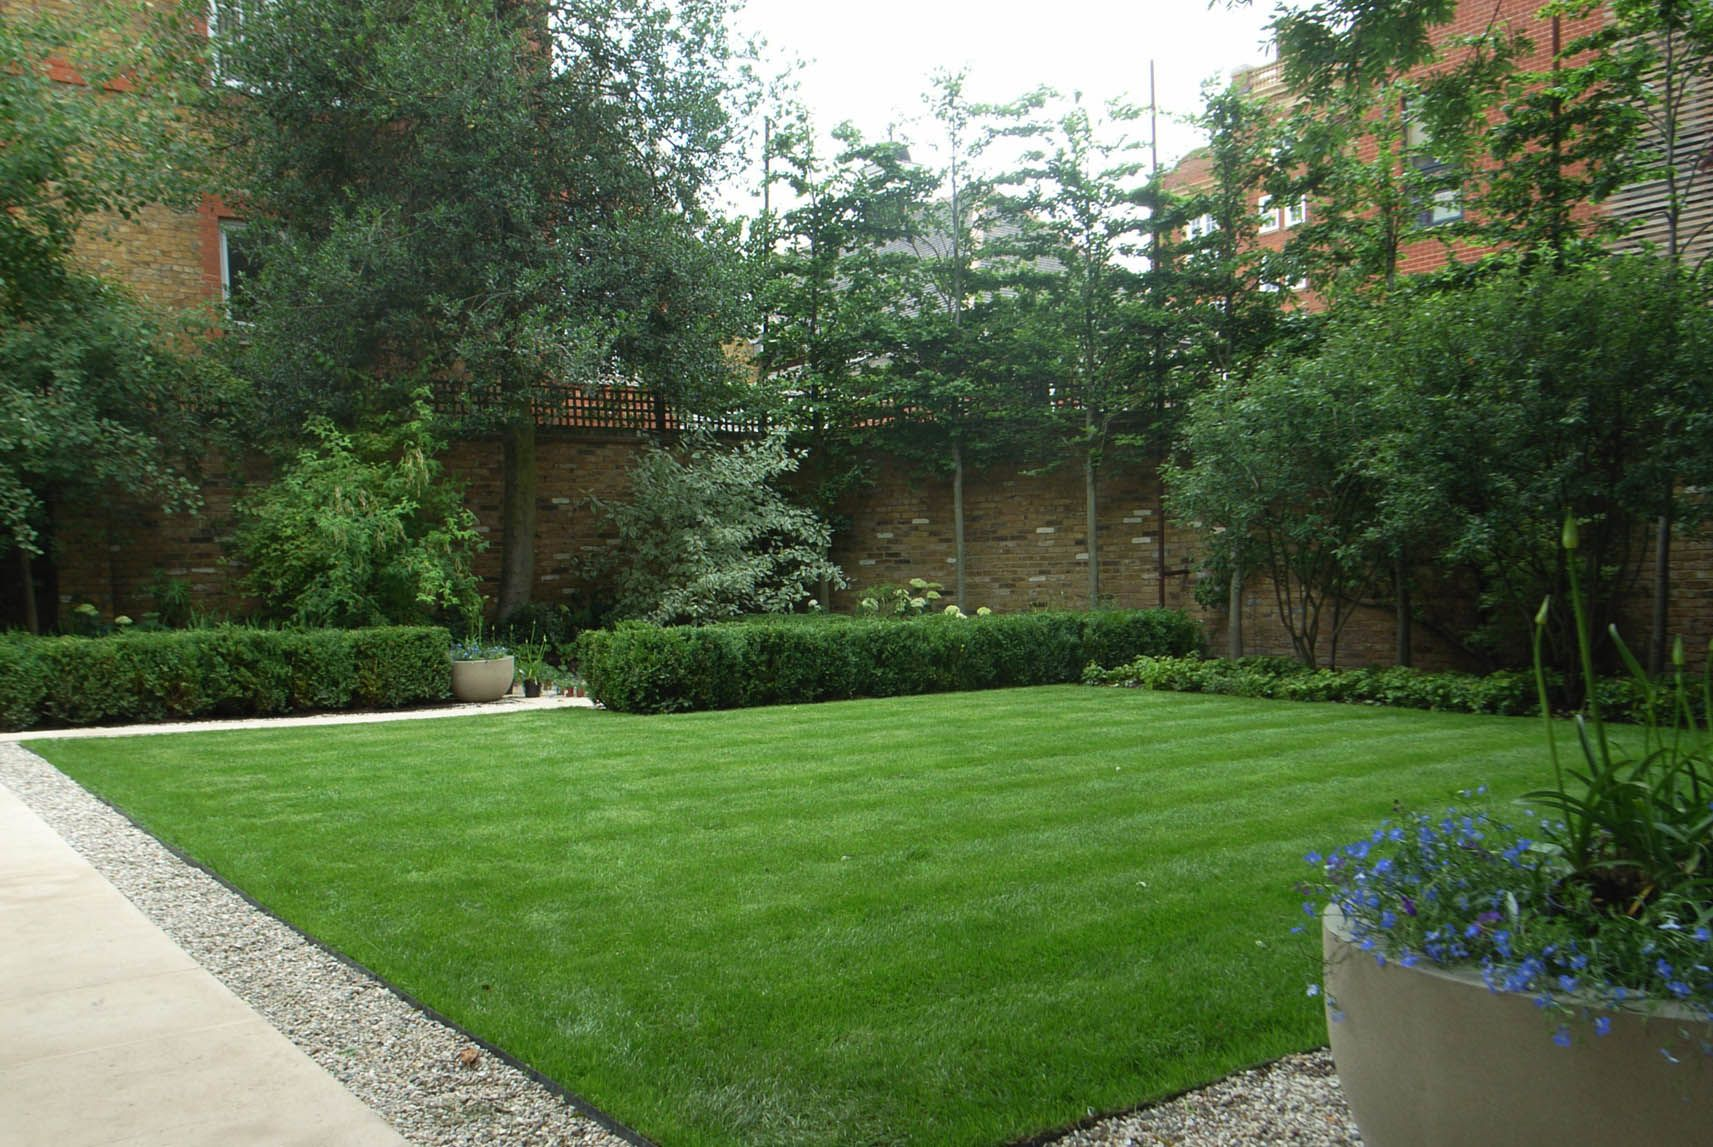 Large square lawn with asymmetrical edge planting adding ... on Small Square Patio Ideas id=83789